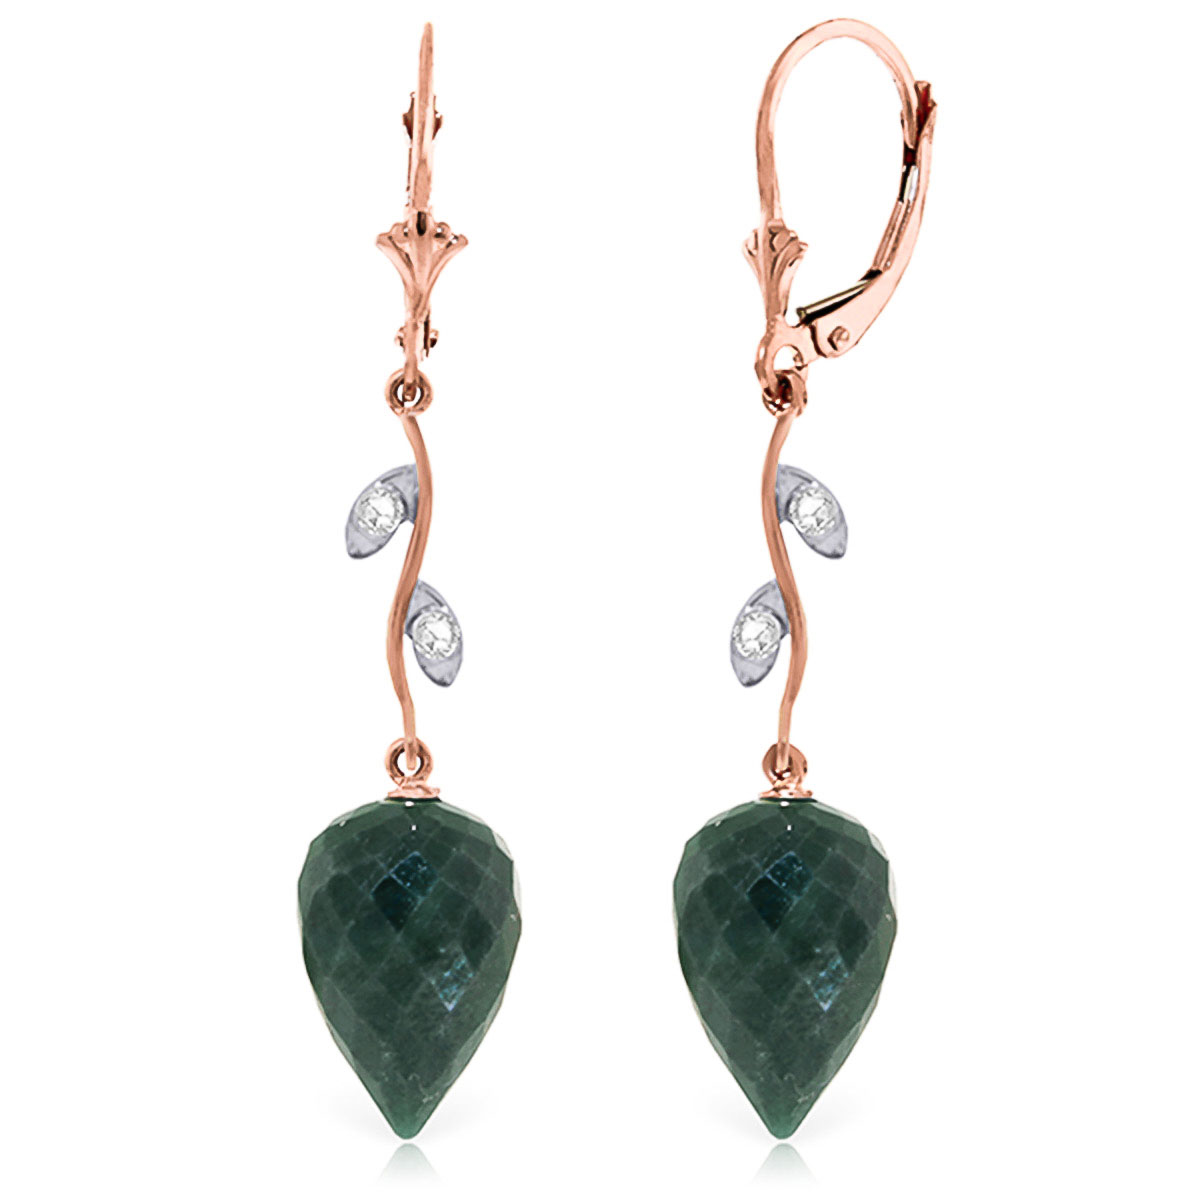 Emerald Drop Earrings 25.72 ctw in 9ct Rose Gold